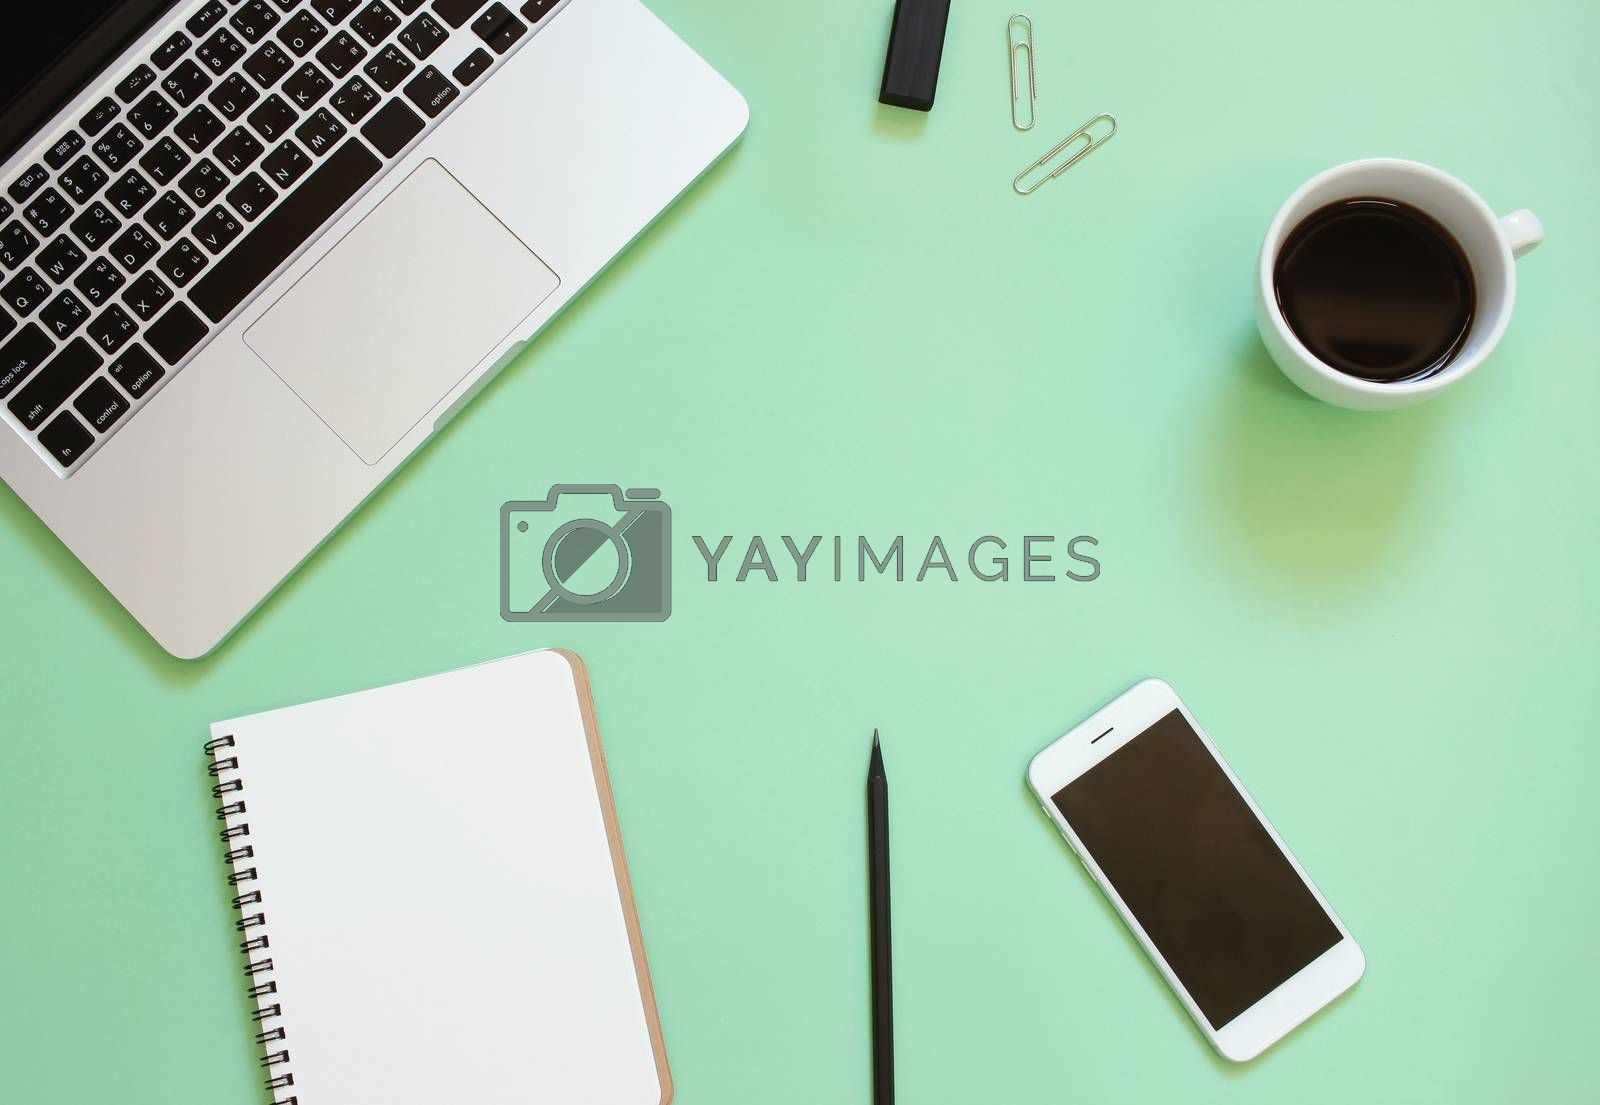 Creative flat lay design of workspace desk with laptop, blank notebook, smartphone, coffee, stationery with copy space background